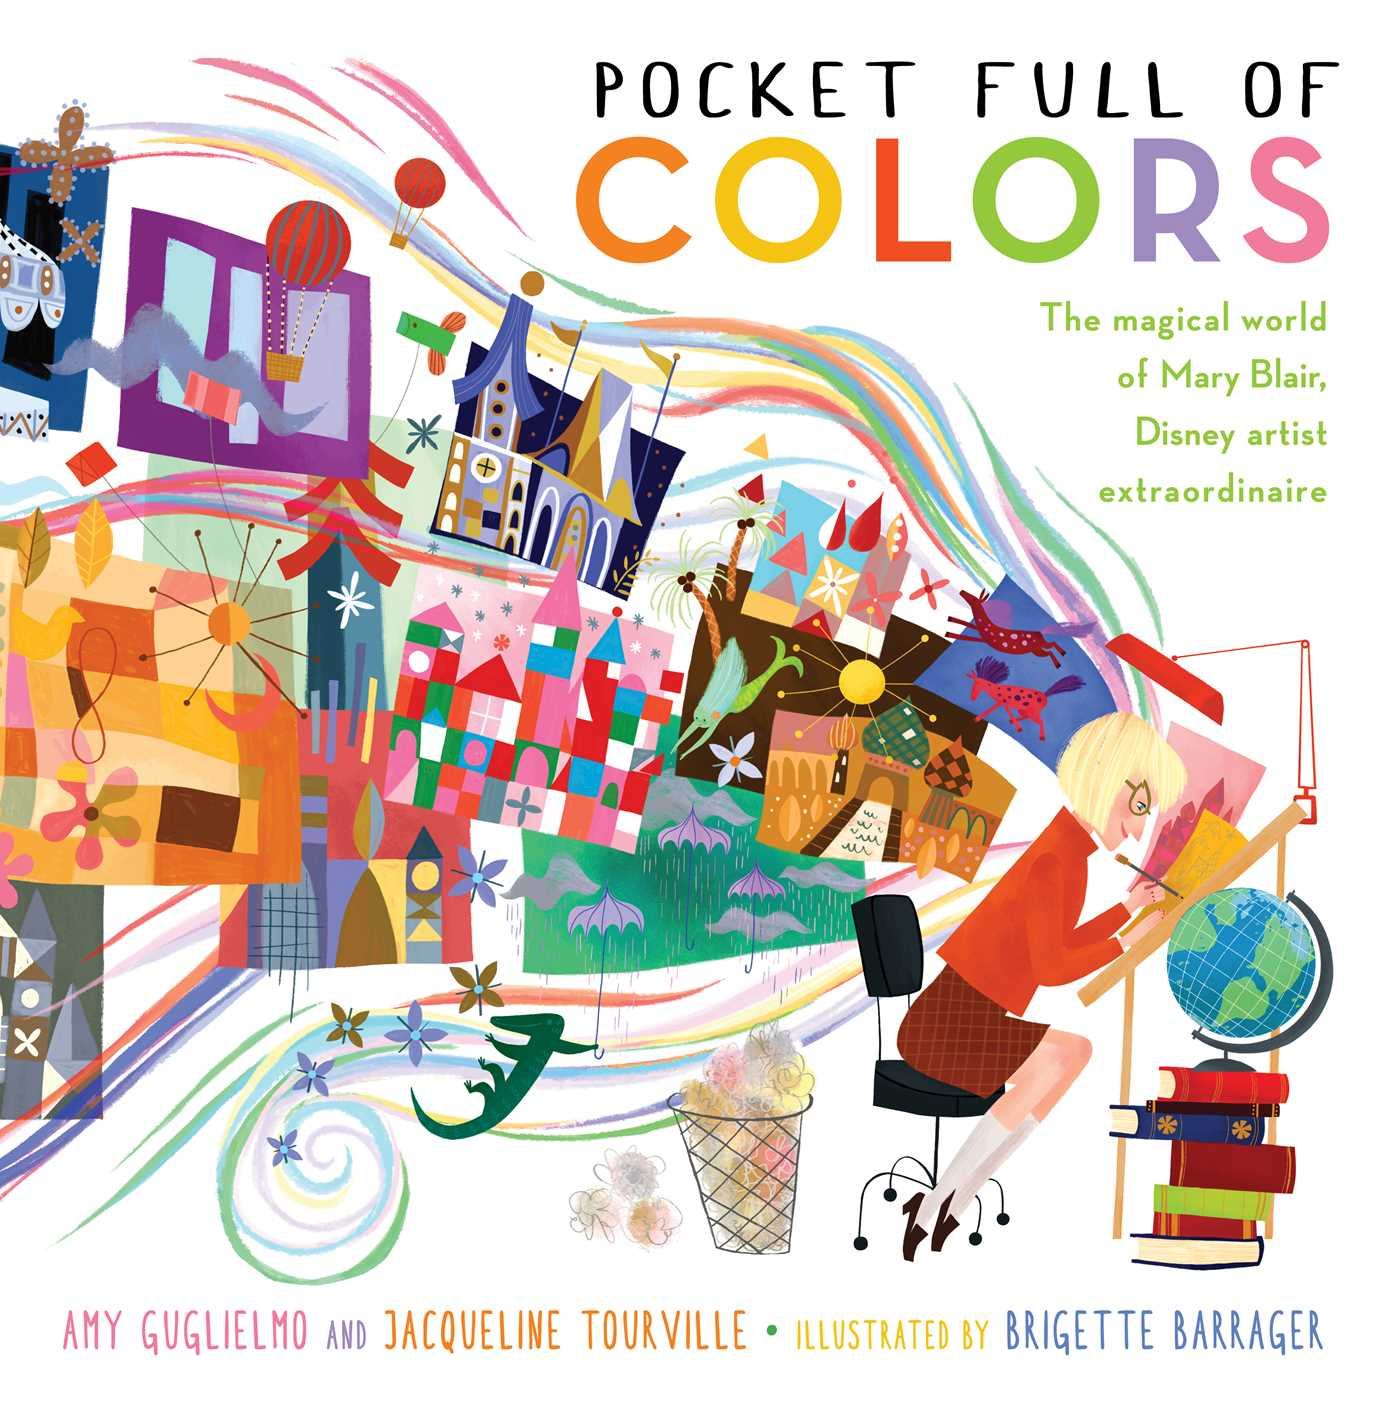 Pocket full of colors 9781481461313 hr